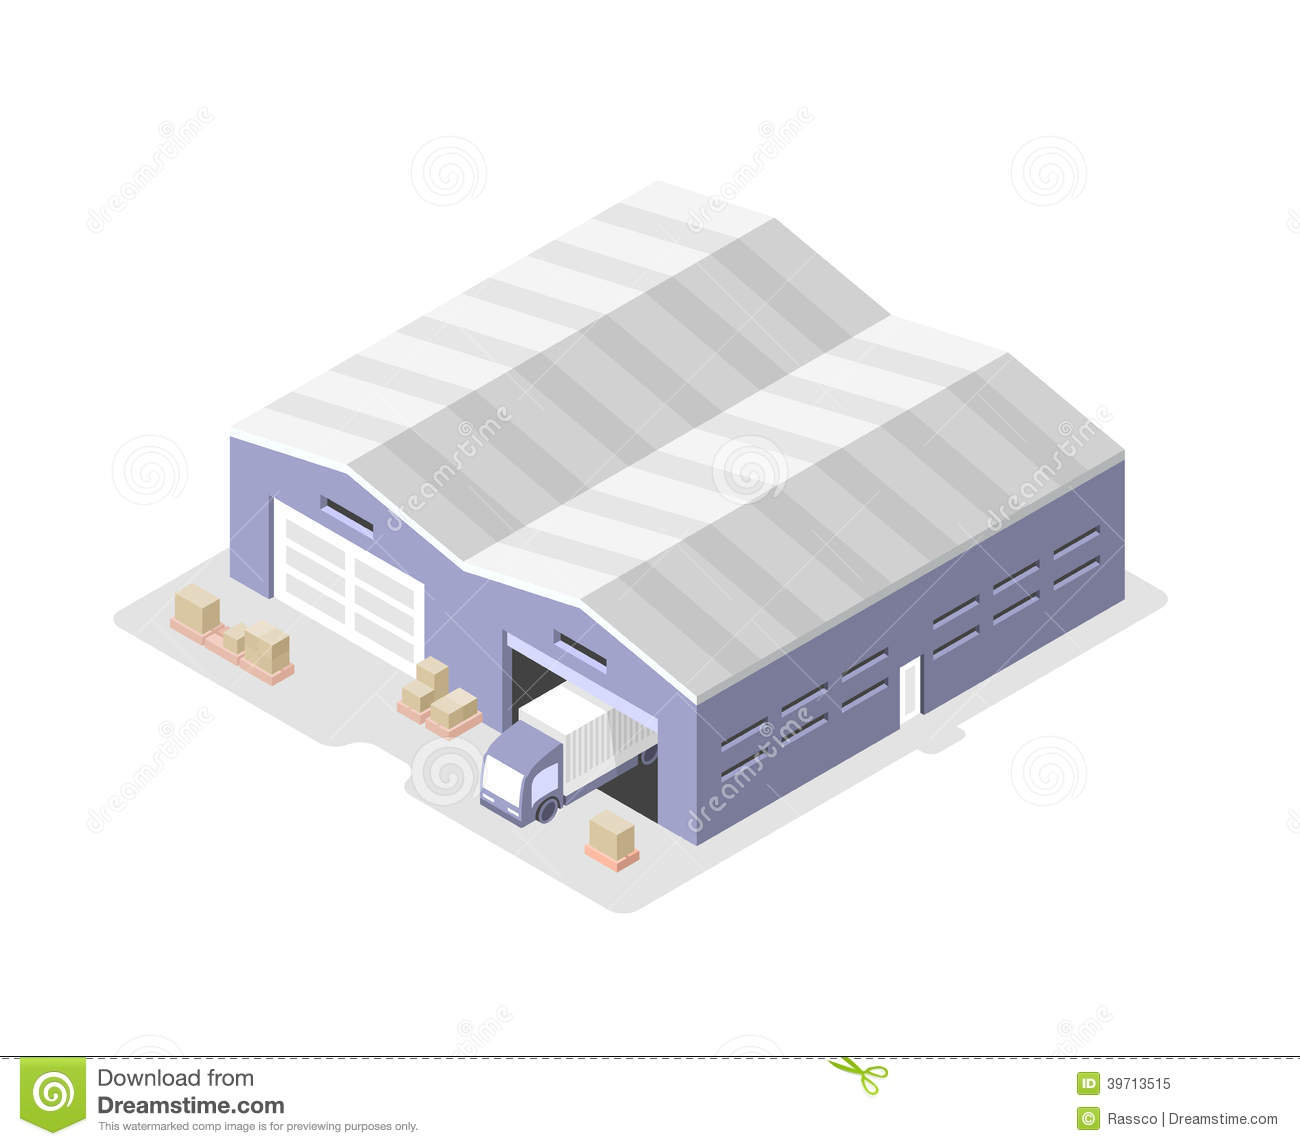 Warehouse Clipart - Clipart Kid